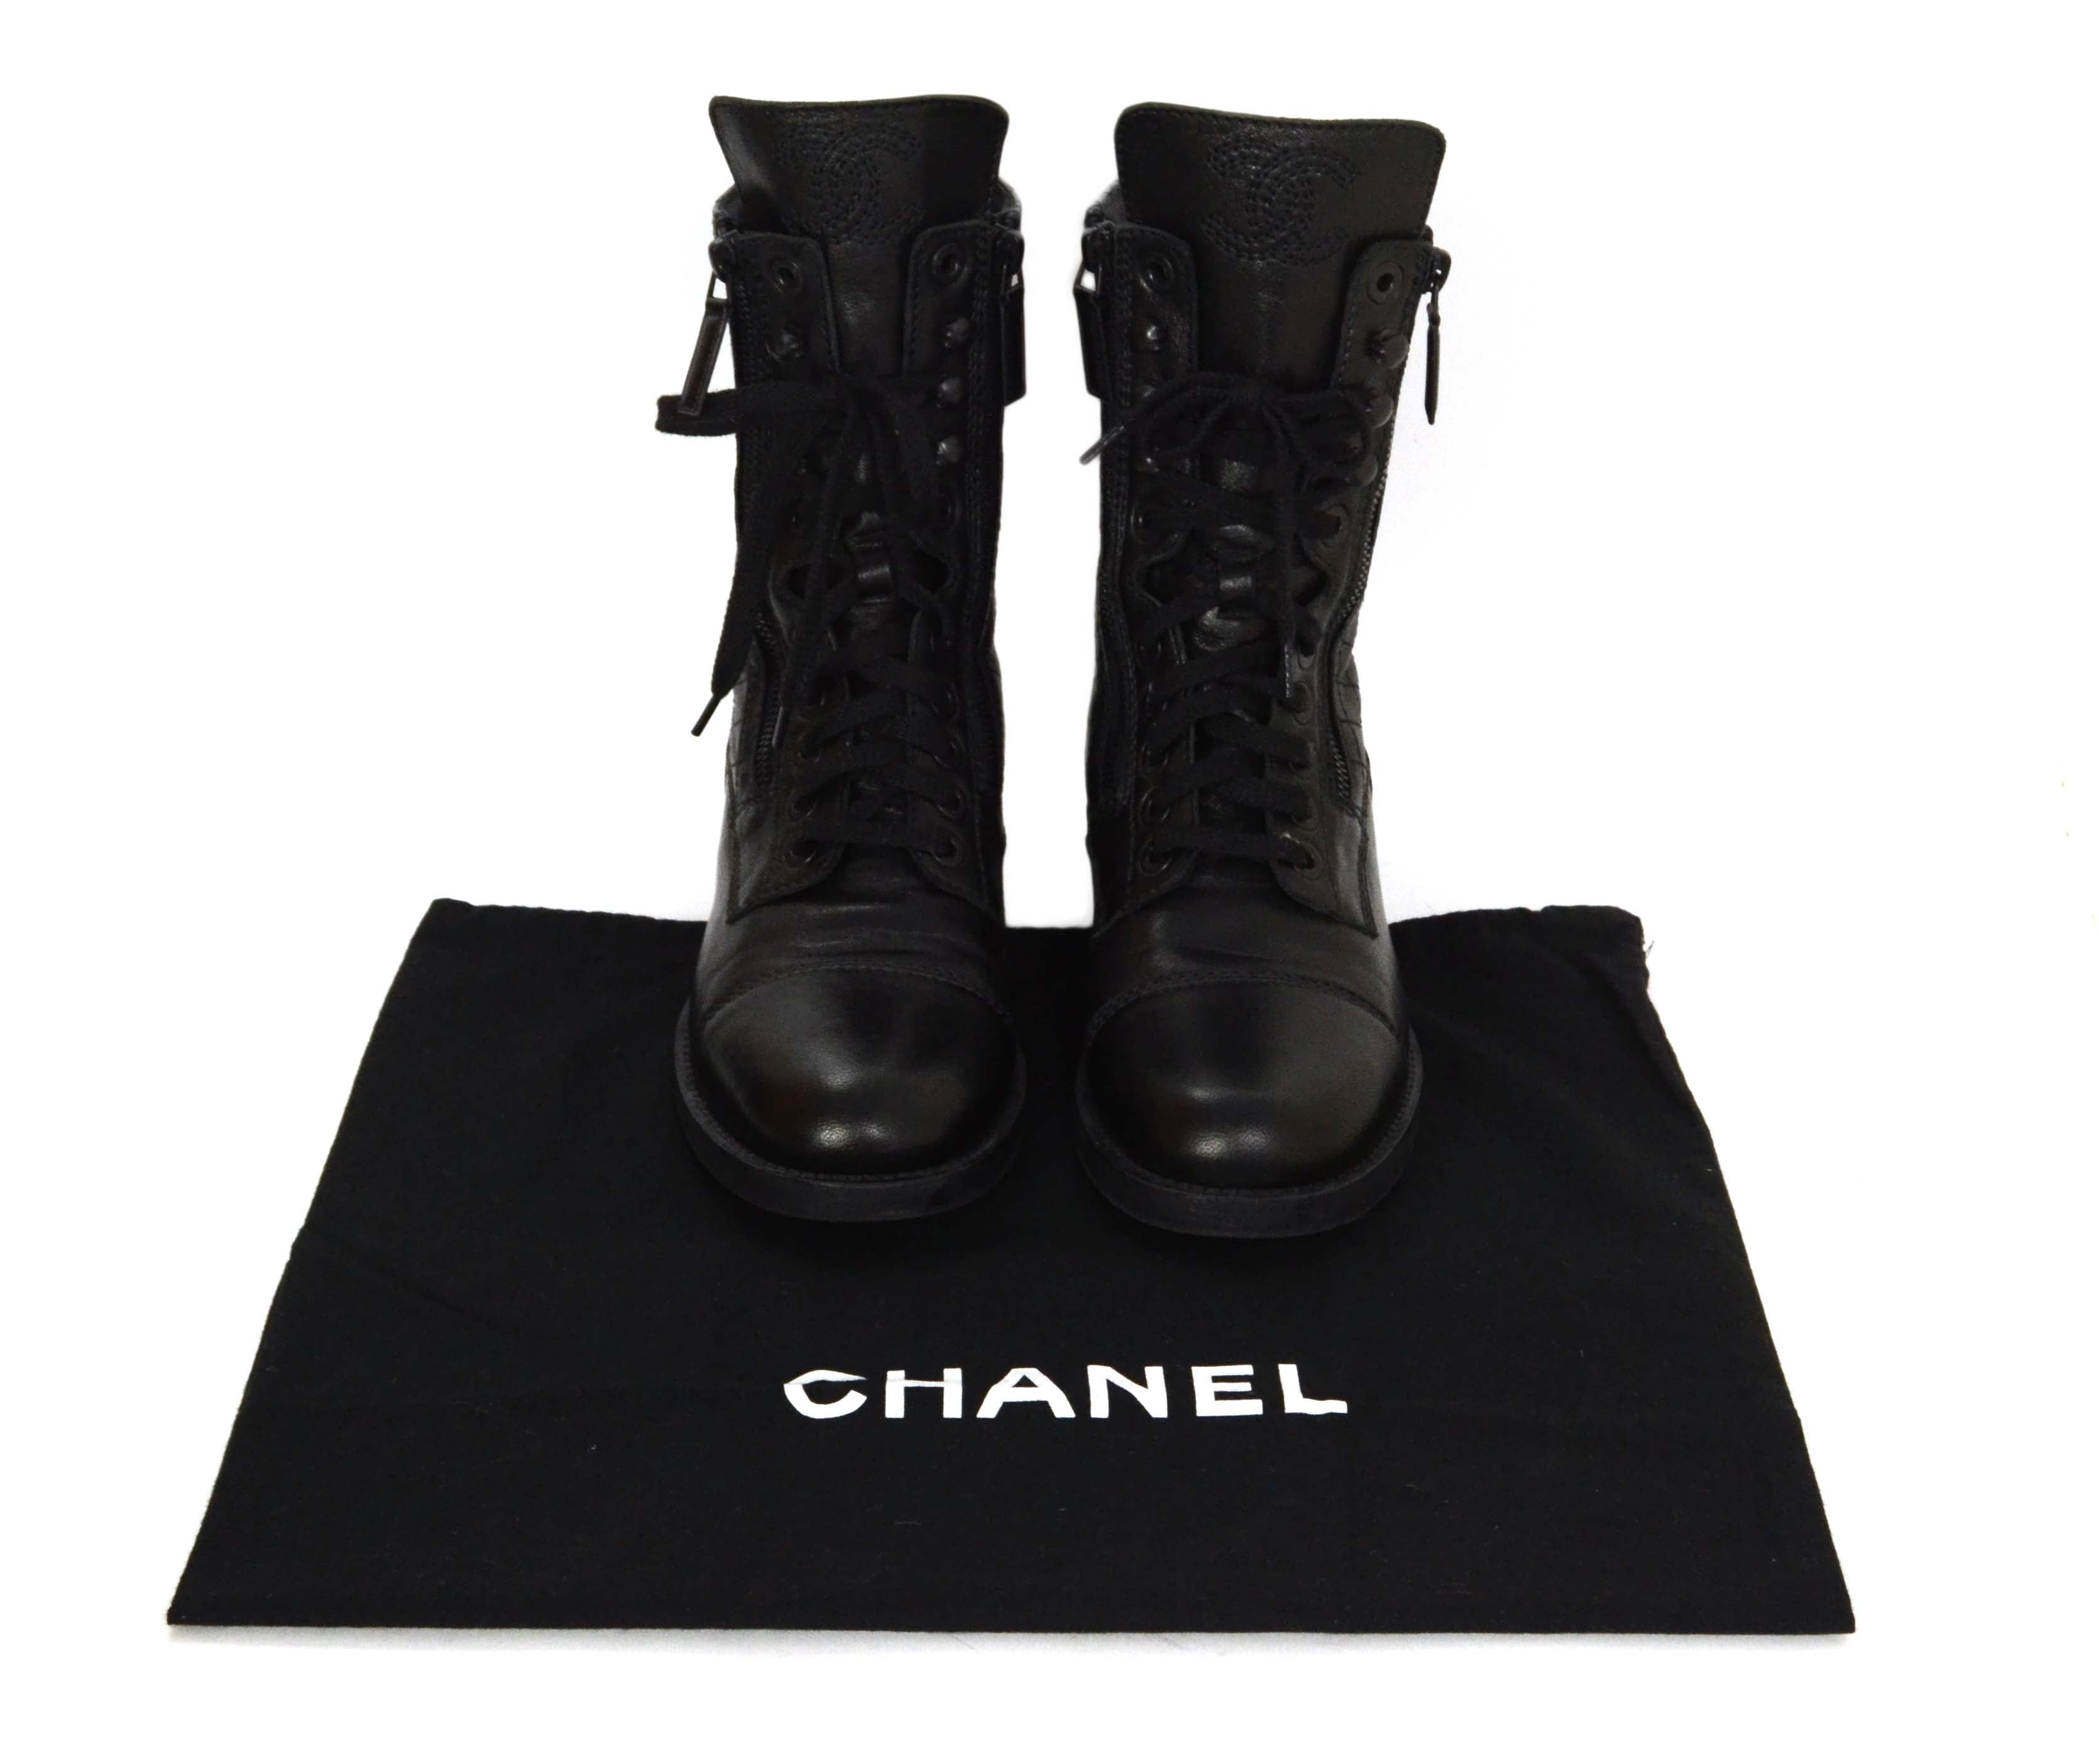 82395779e65 Chanel Black Leather Lace Up Combat Boots sz 39 at 1stdibs